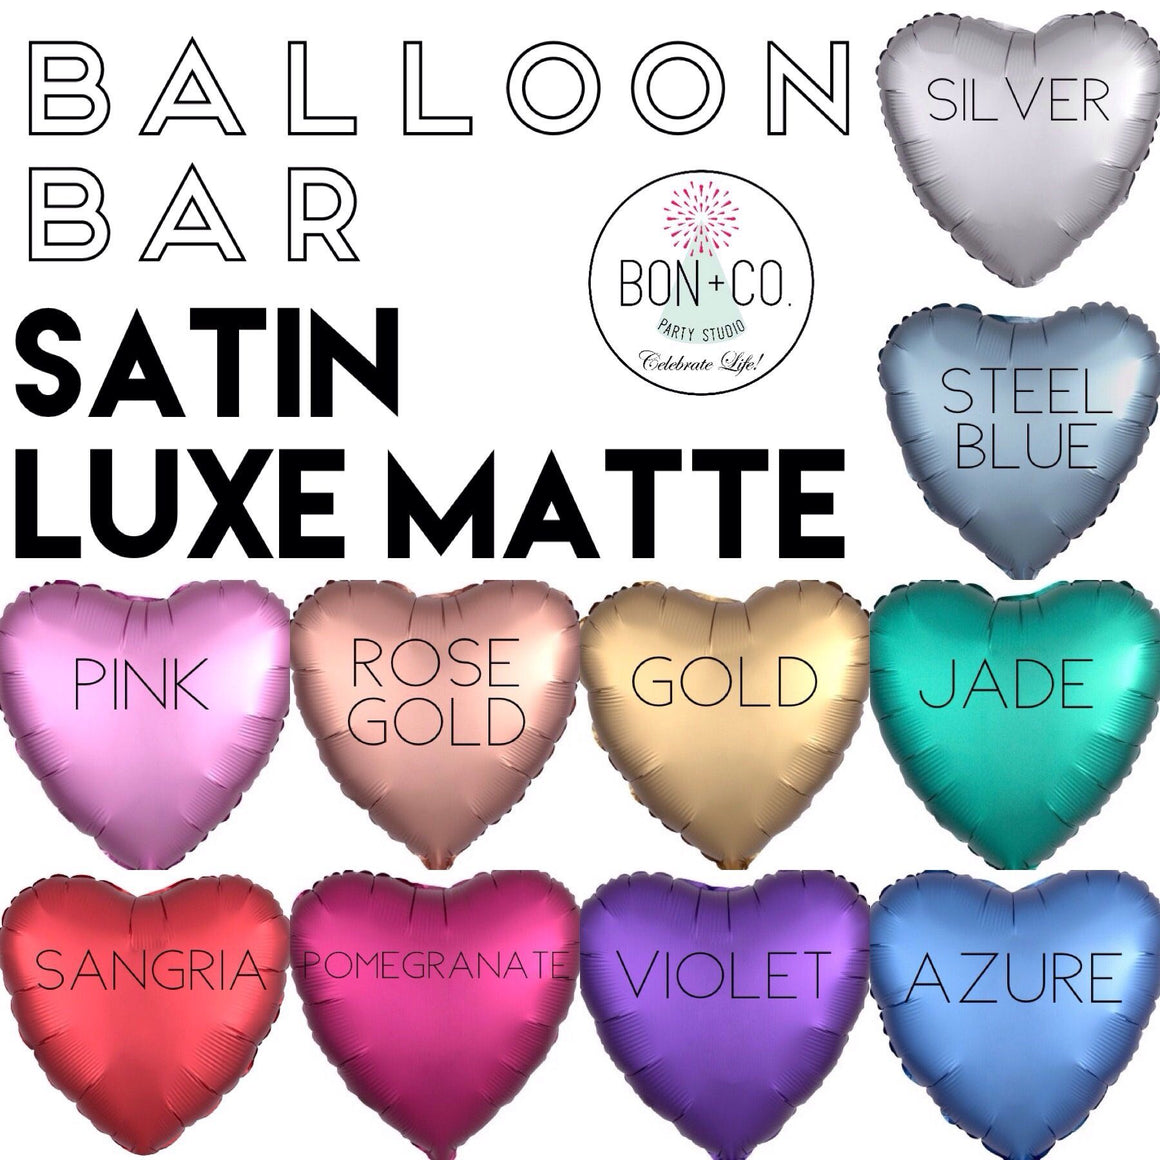 BALLOON BAR - HEART SATIN LUXE, Balloons, Anagram - Bon + Co. Party Studio